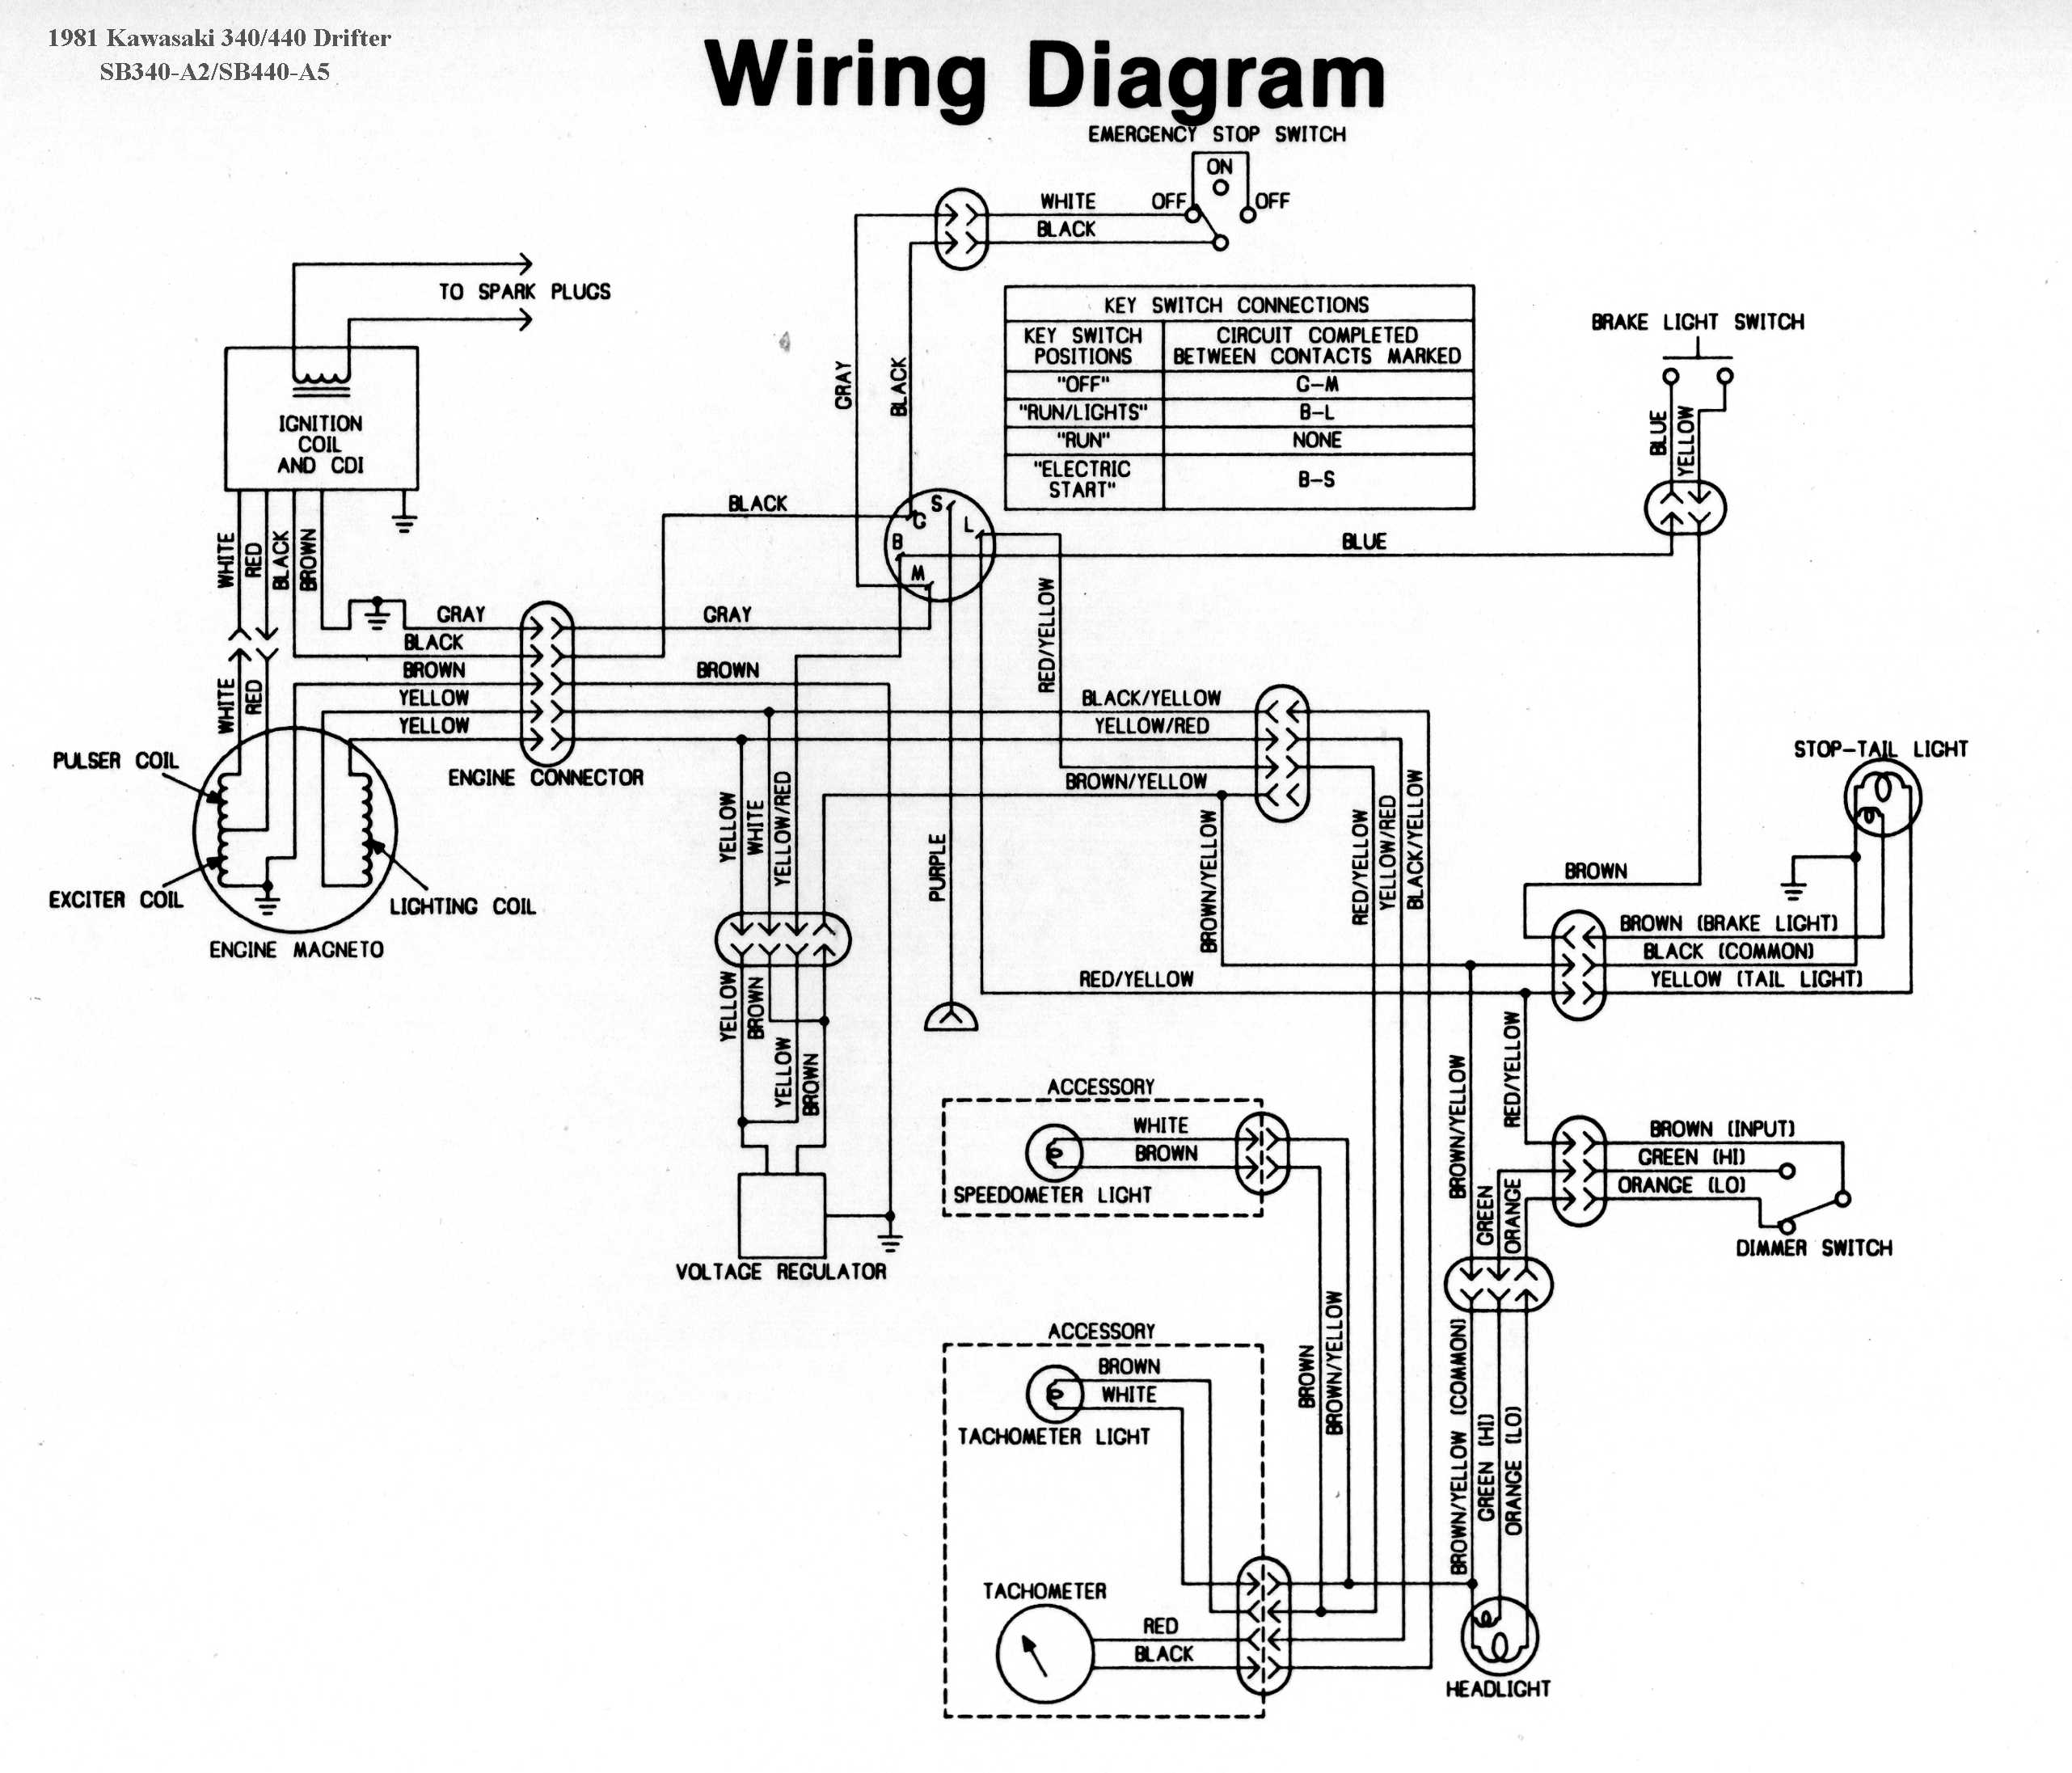 1982 Kawasaki Kz440 Wiring Diagram Will Be A Thing Gpz 750 Schematic 1980 Ltd 440 Simple Rh David Huggett Co Uk